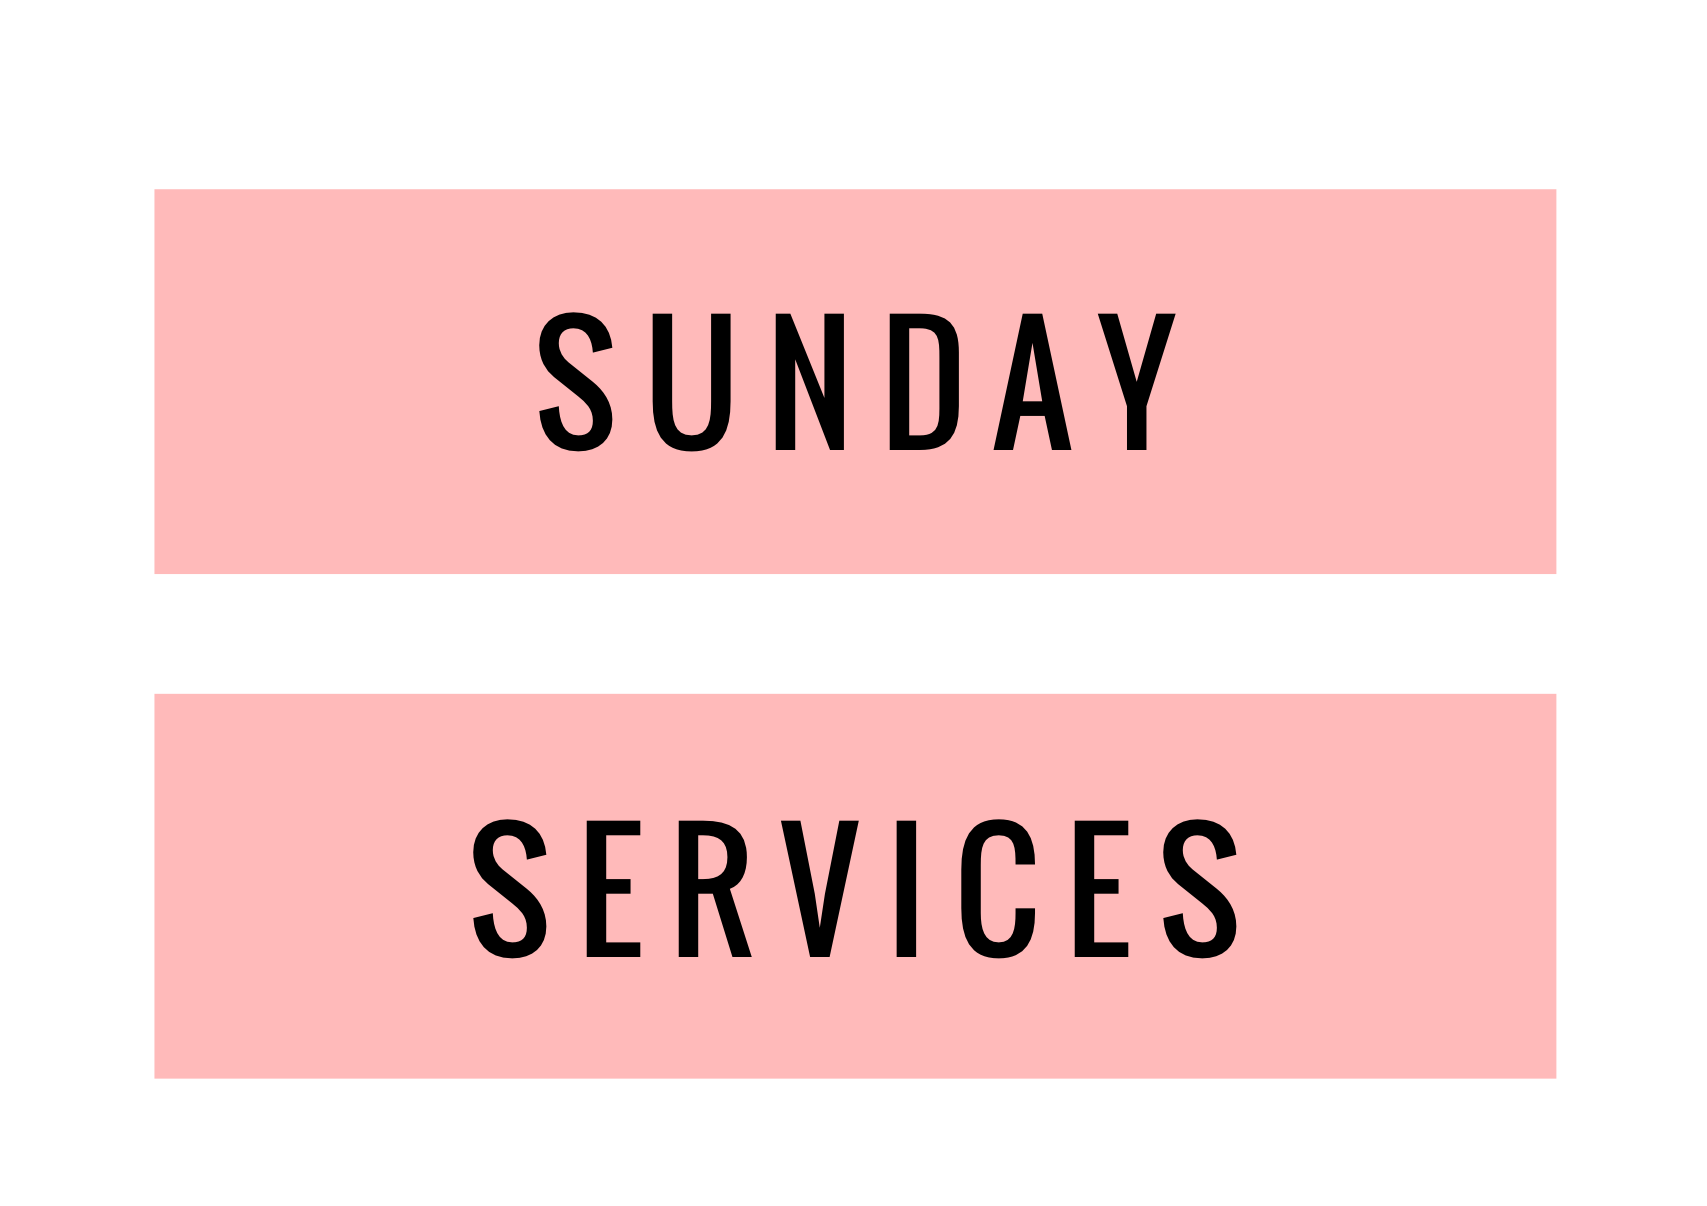 We are closed on Sundays, but if appointment is permitted this is a additional service charge.